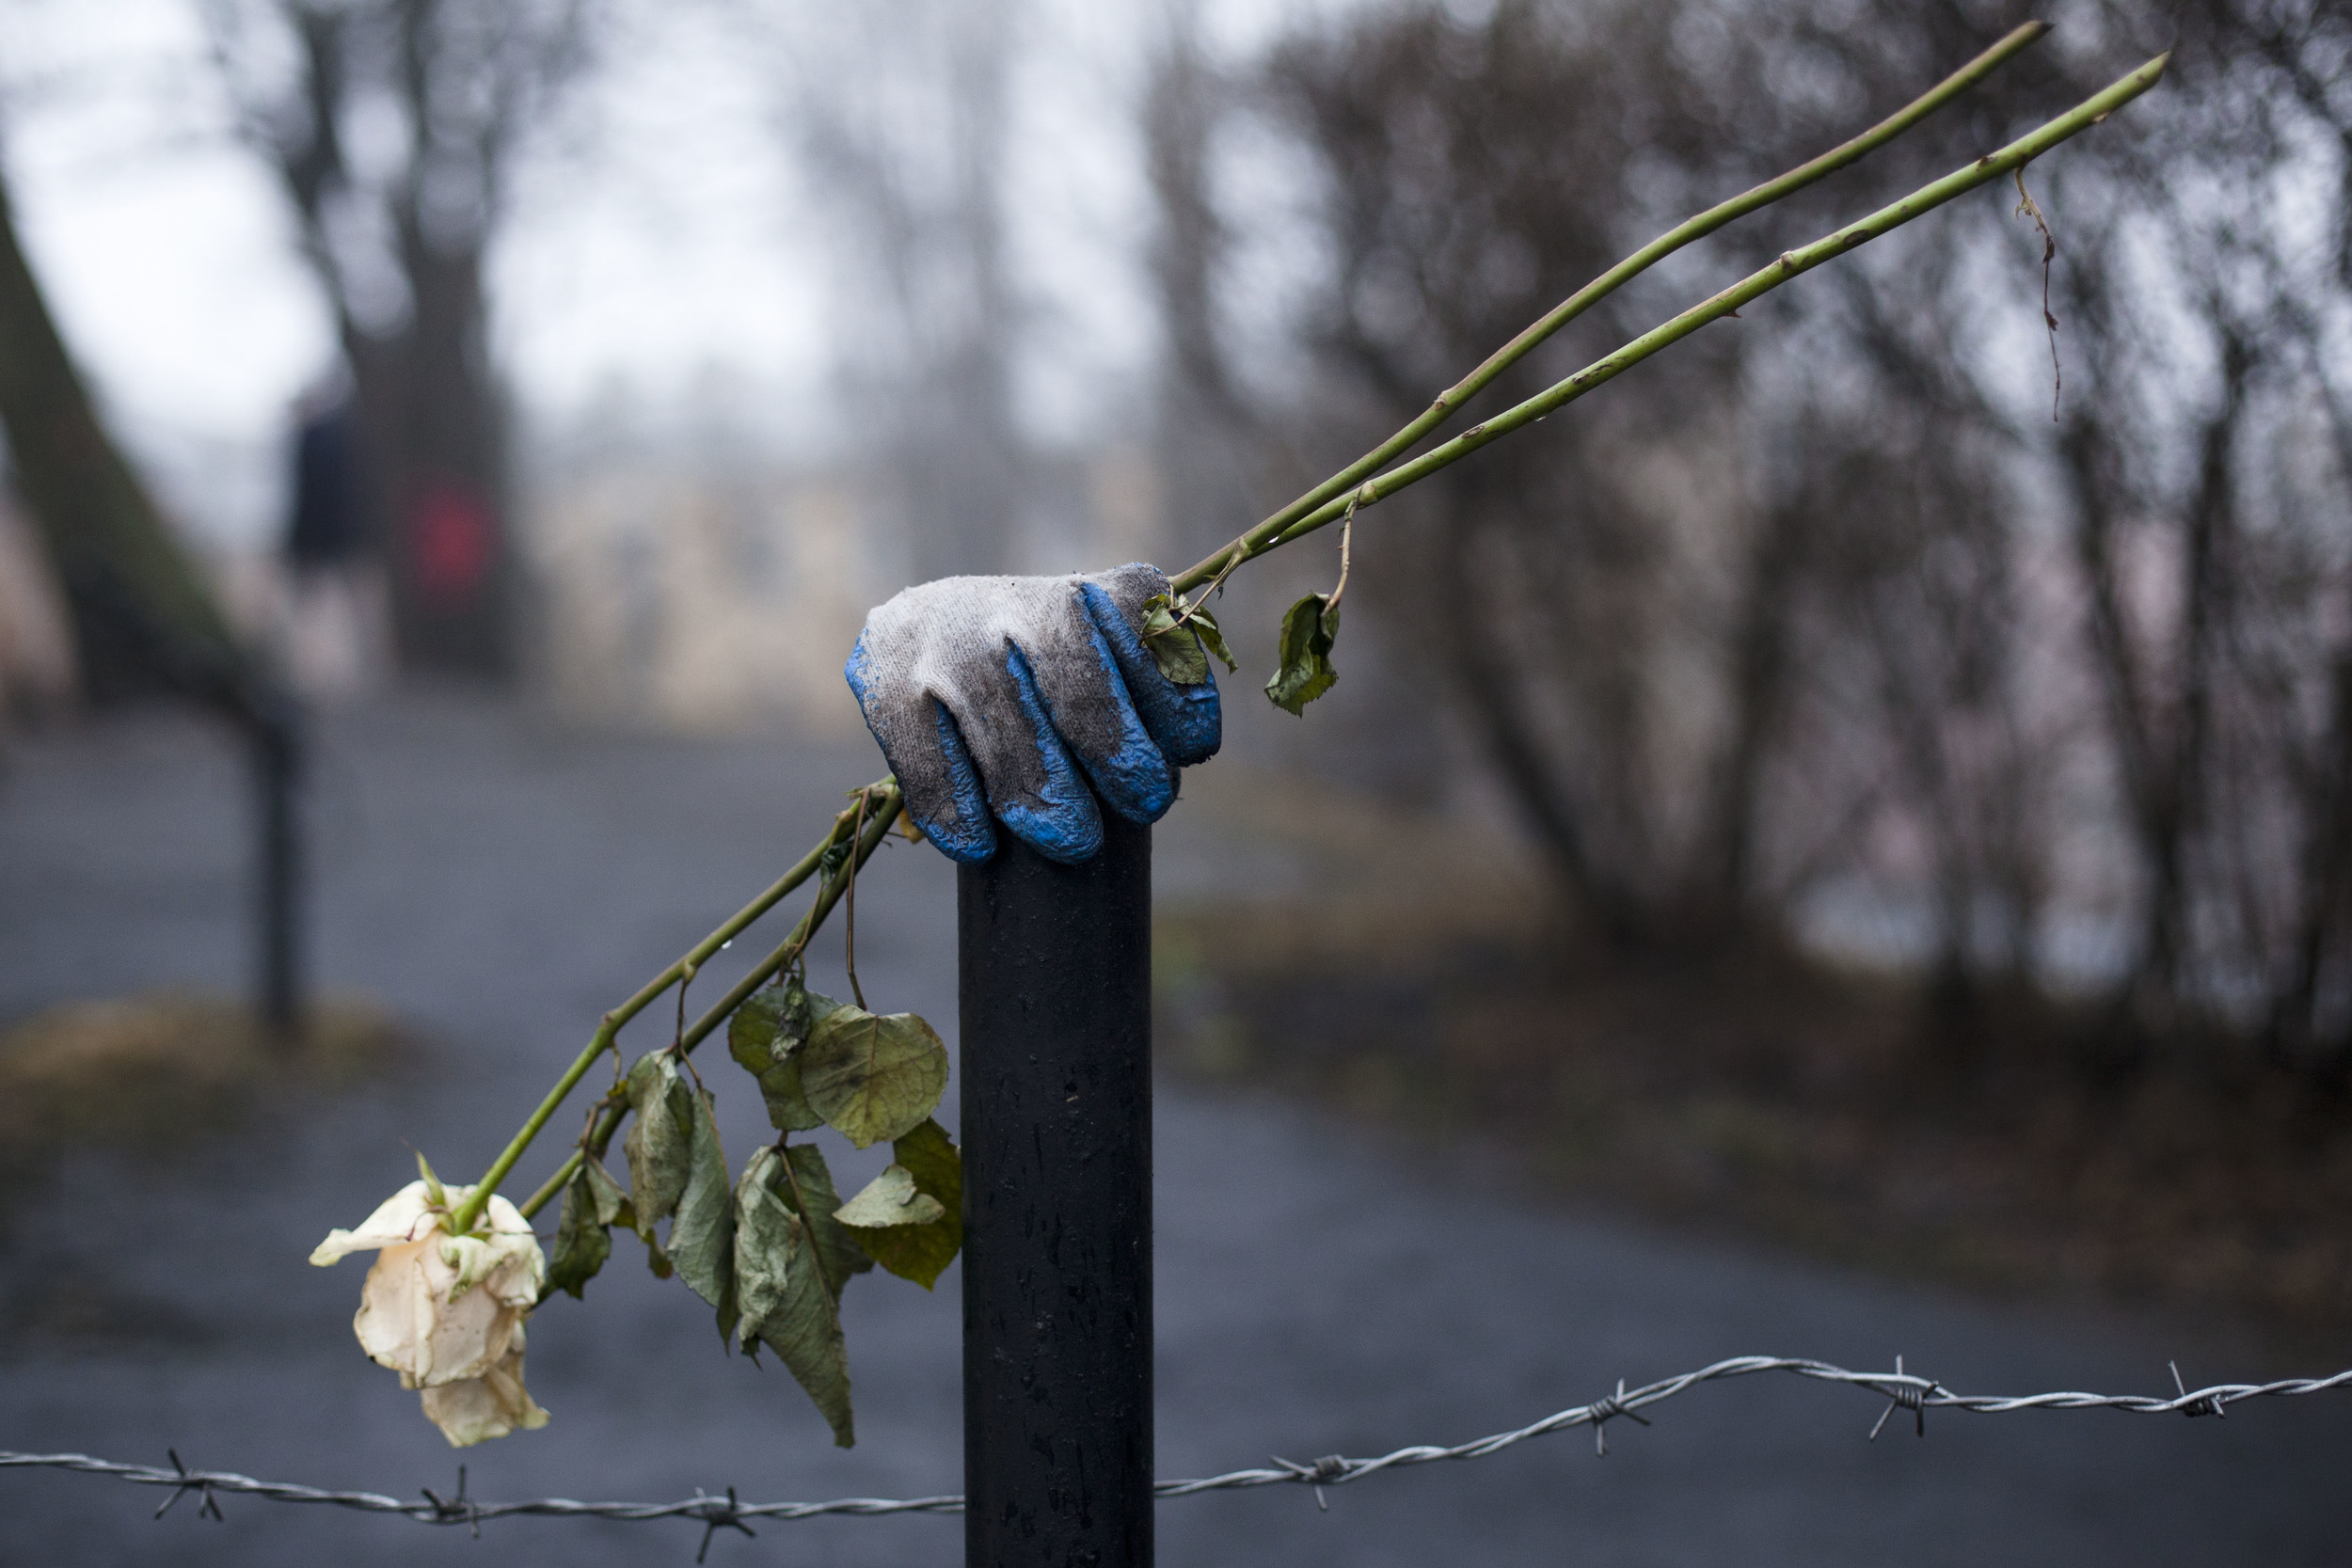 A flower and a glove are placed on a post as a memorial to those who died in late February's clashes in Kiev's Independence Square, Ukraine, Wednesday, March 5, 2014. (AP Photo/David Azia)